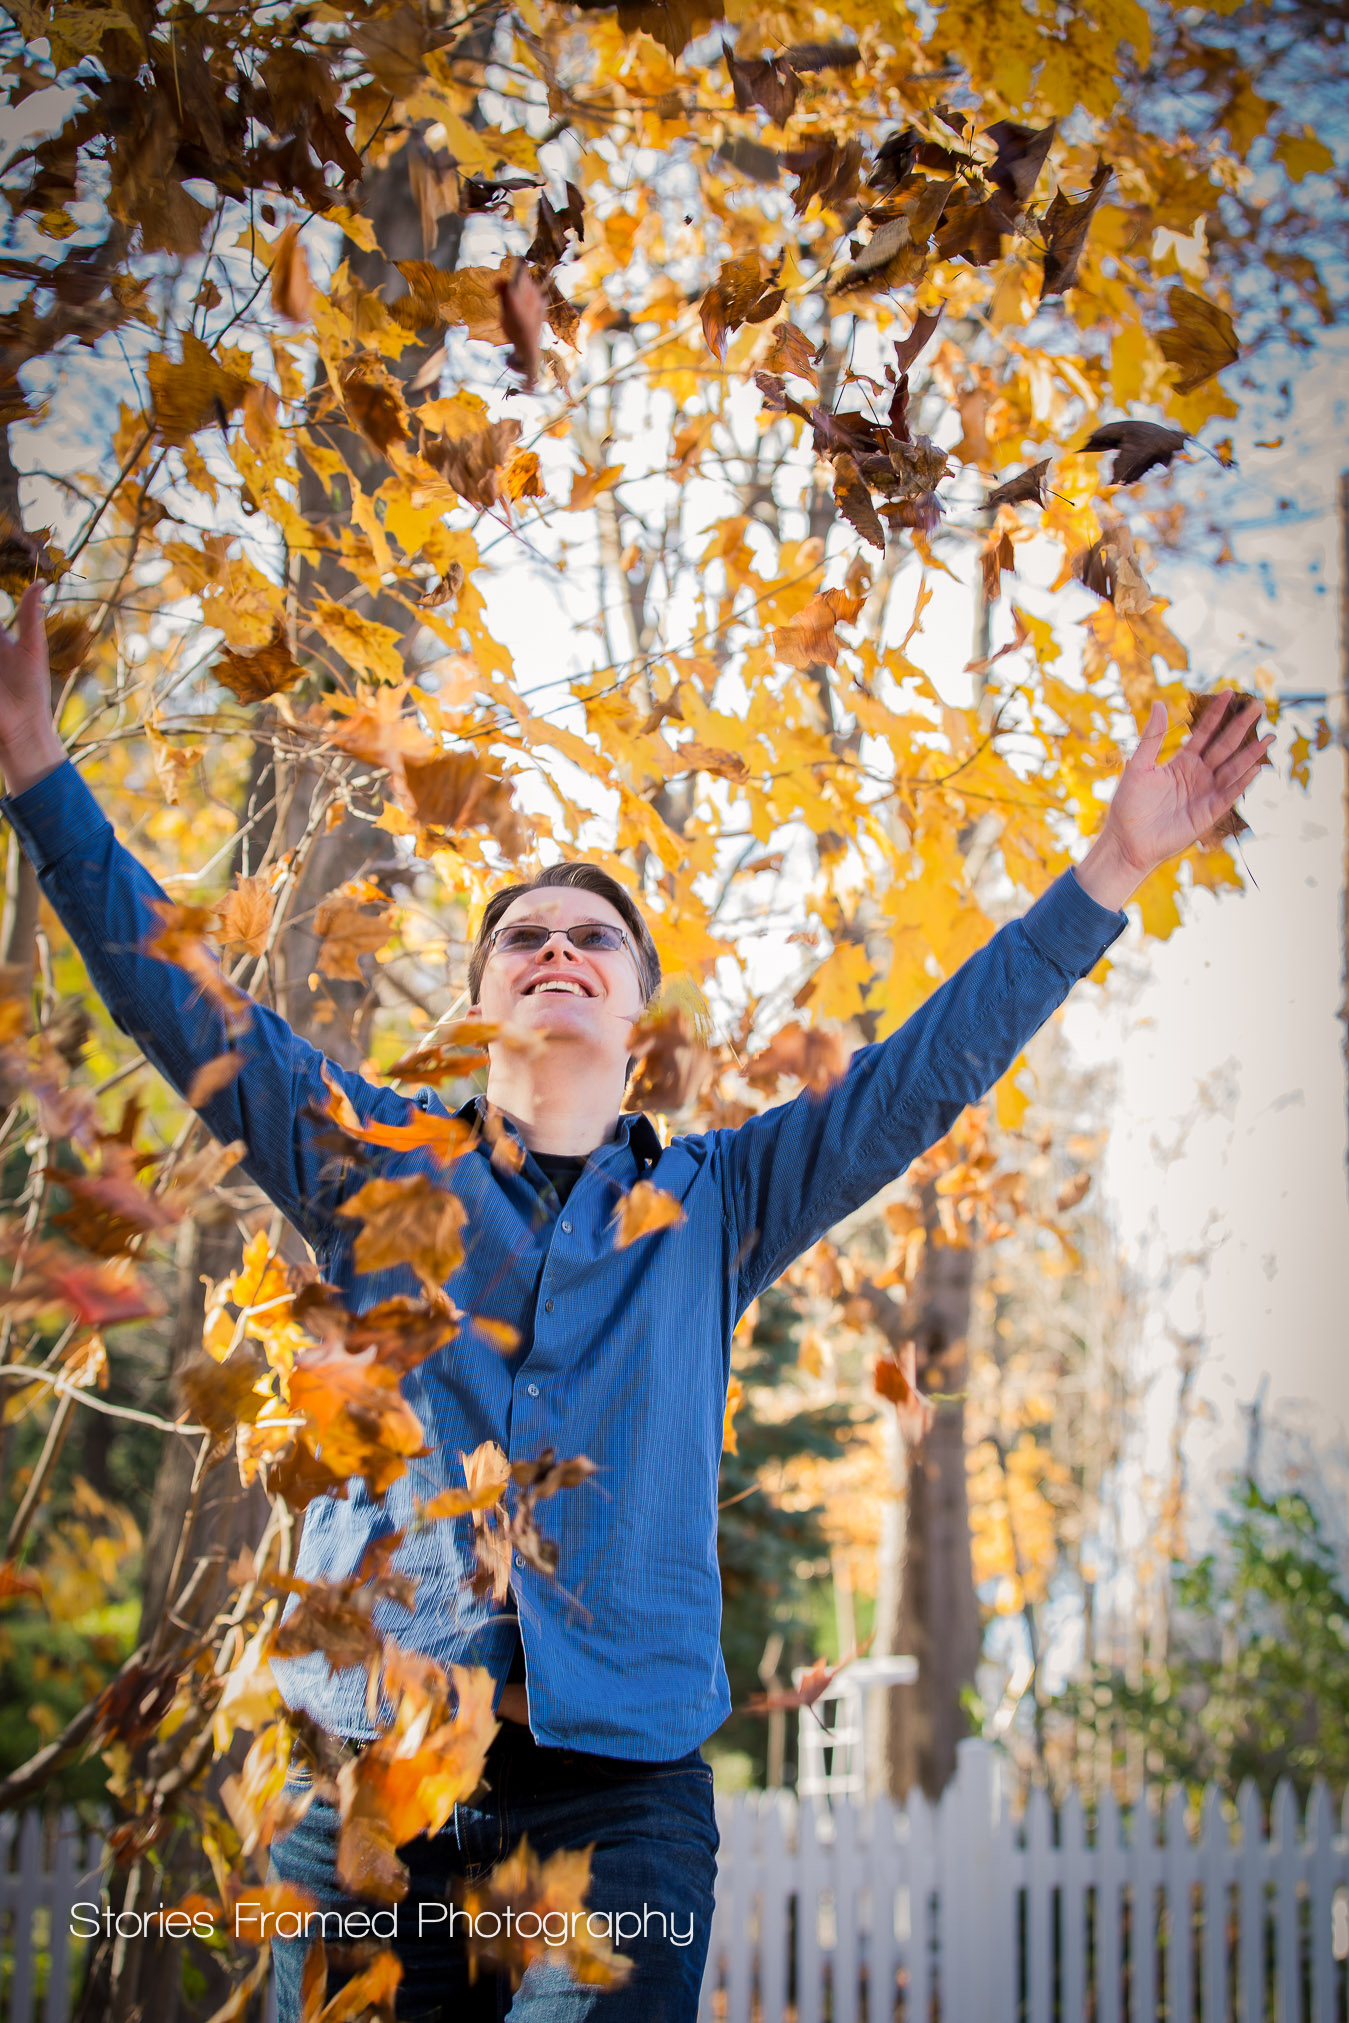 Stories-Framed-Photography-throwing-leaves